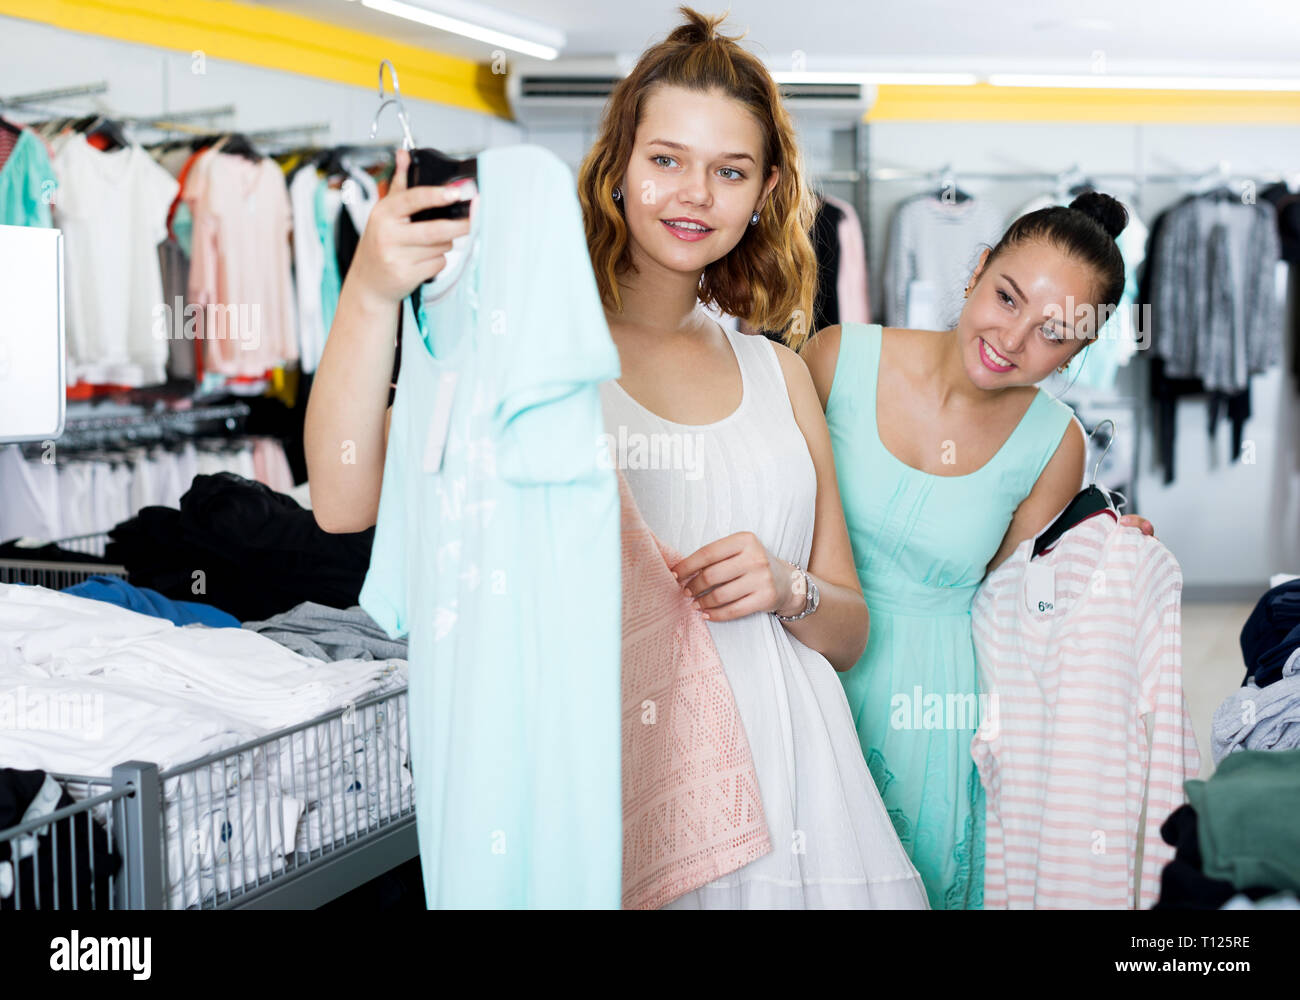 90ede11061059 Funny young women shopping at the clothing store Stock Photo ...